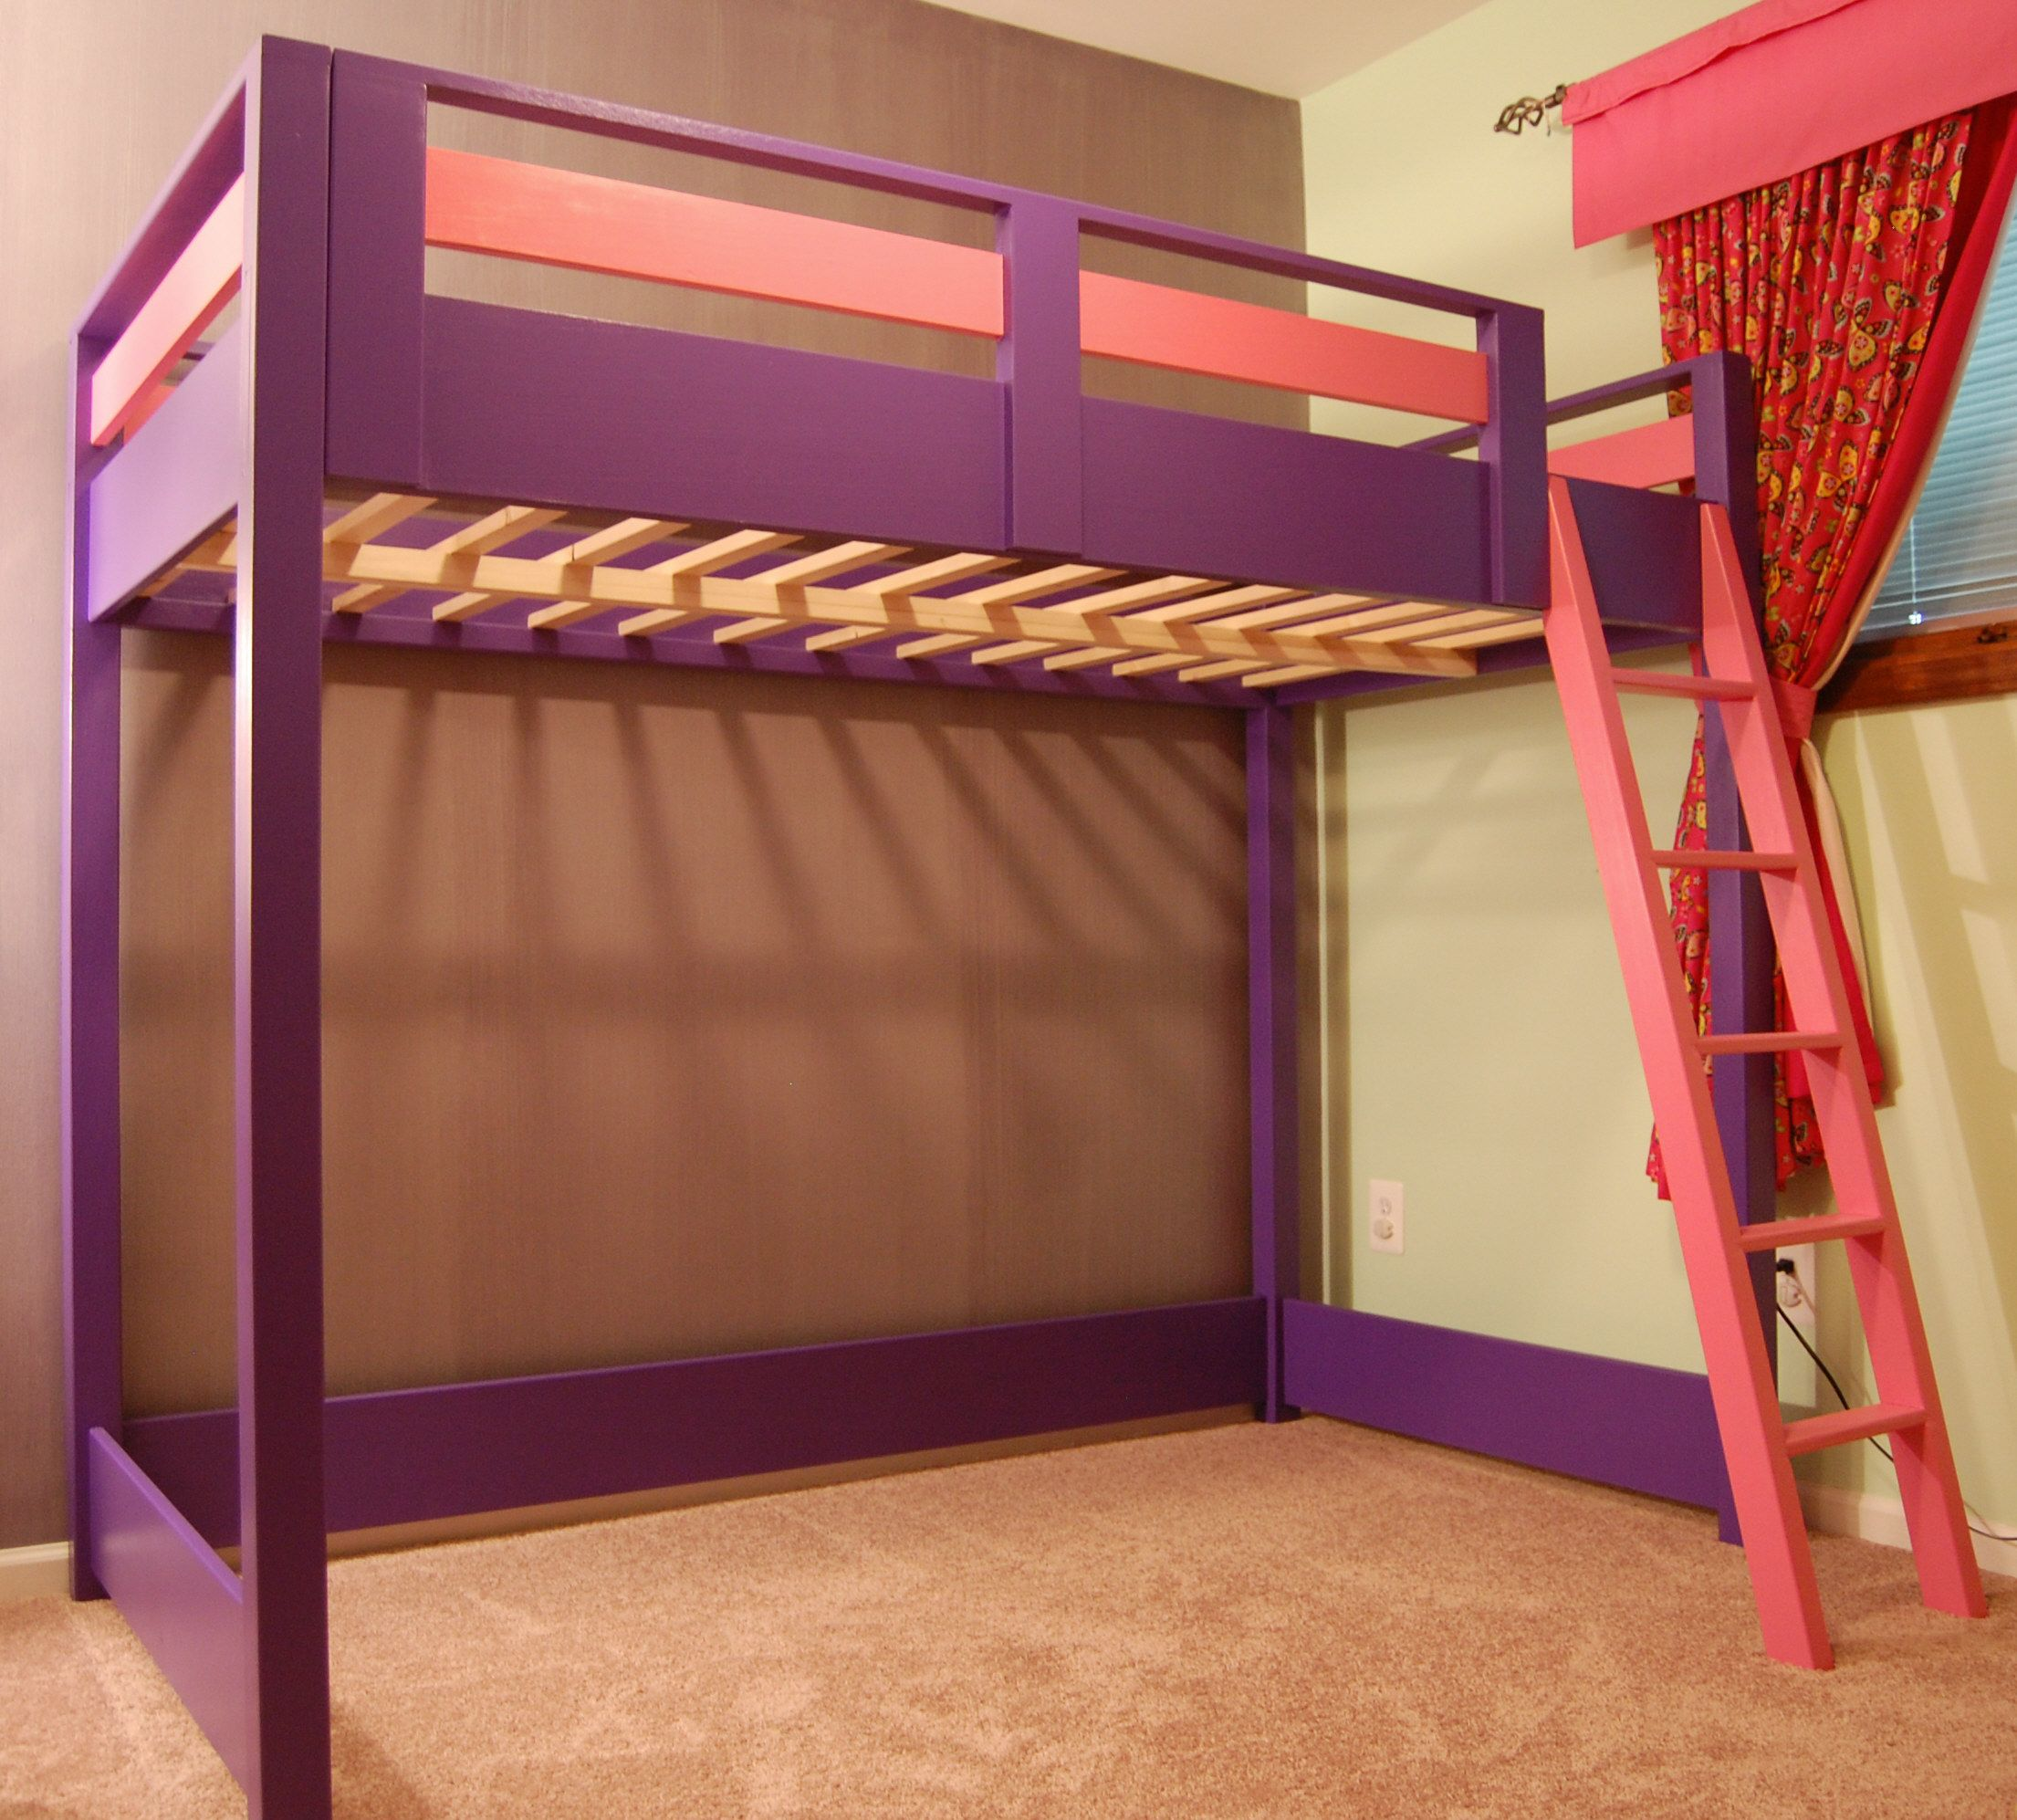 Bedroom loft for teens - Diy Loft Bed A Loft Bed Is A Great Space Saver For A Kid S Room